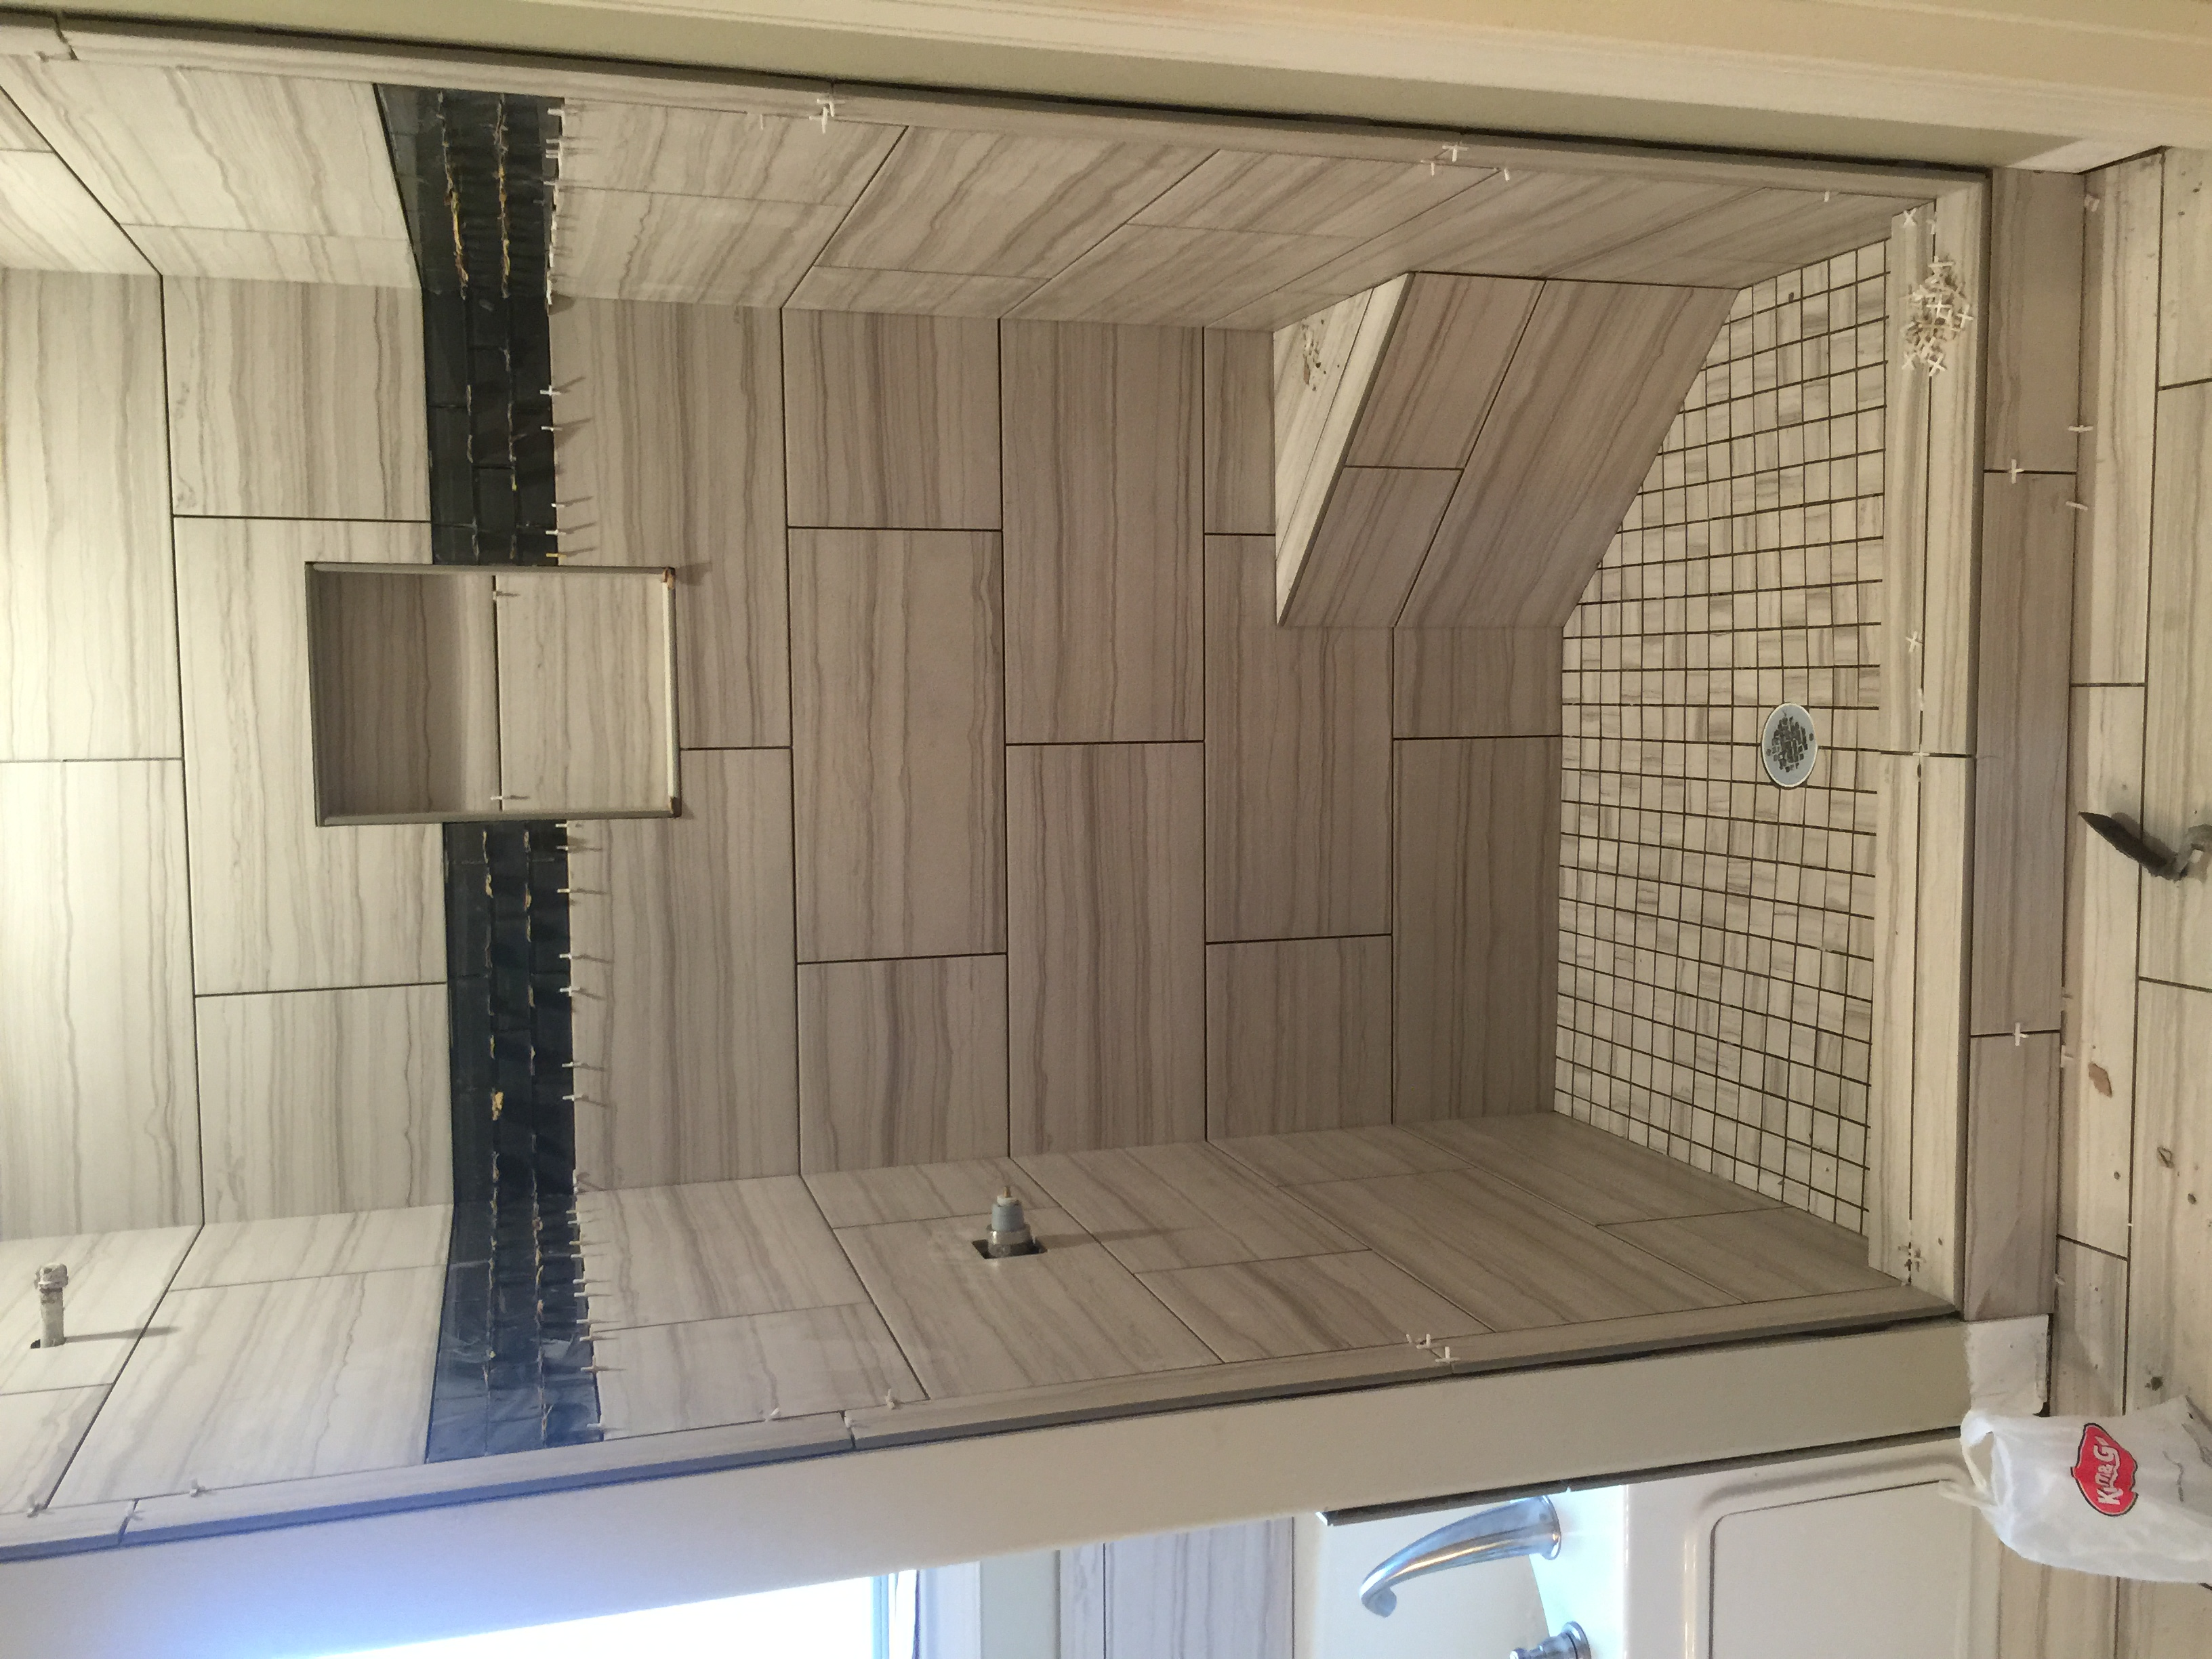 Ceramic Installation in shower